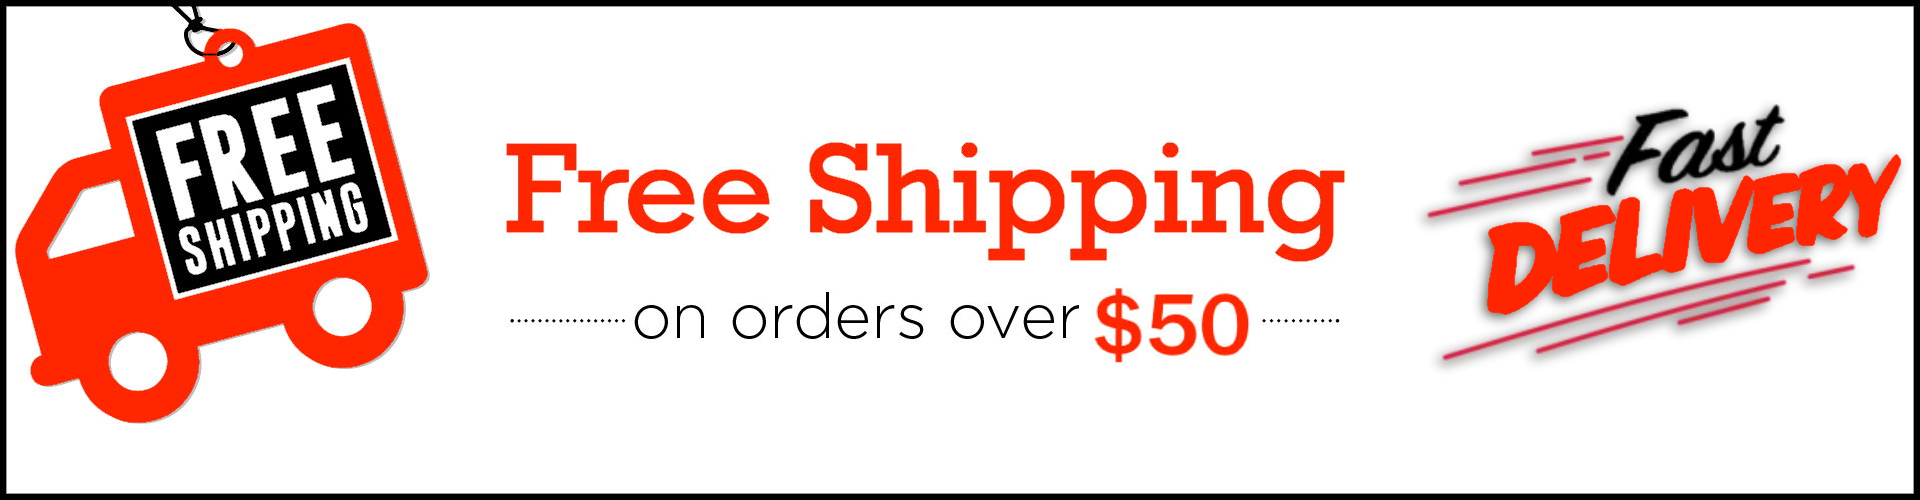 Free fast shipping over $50